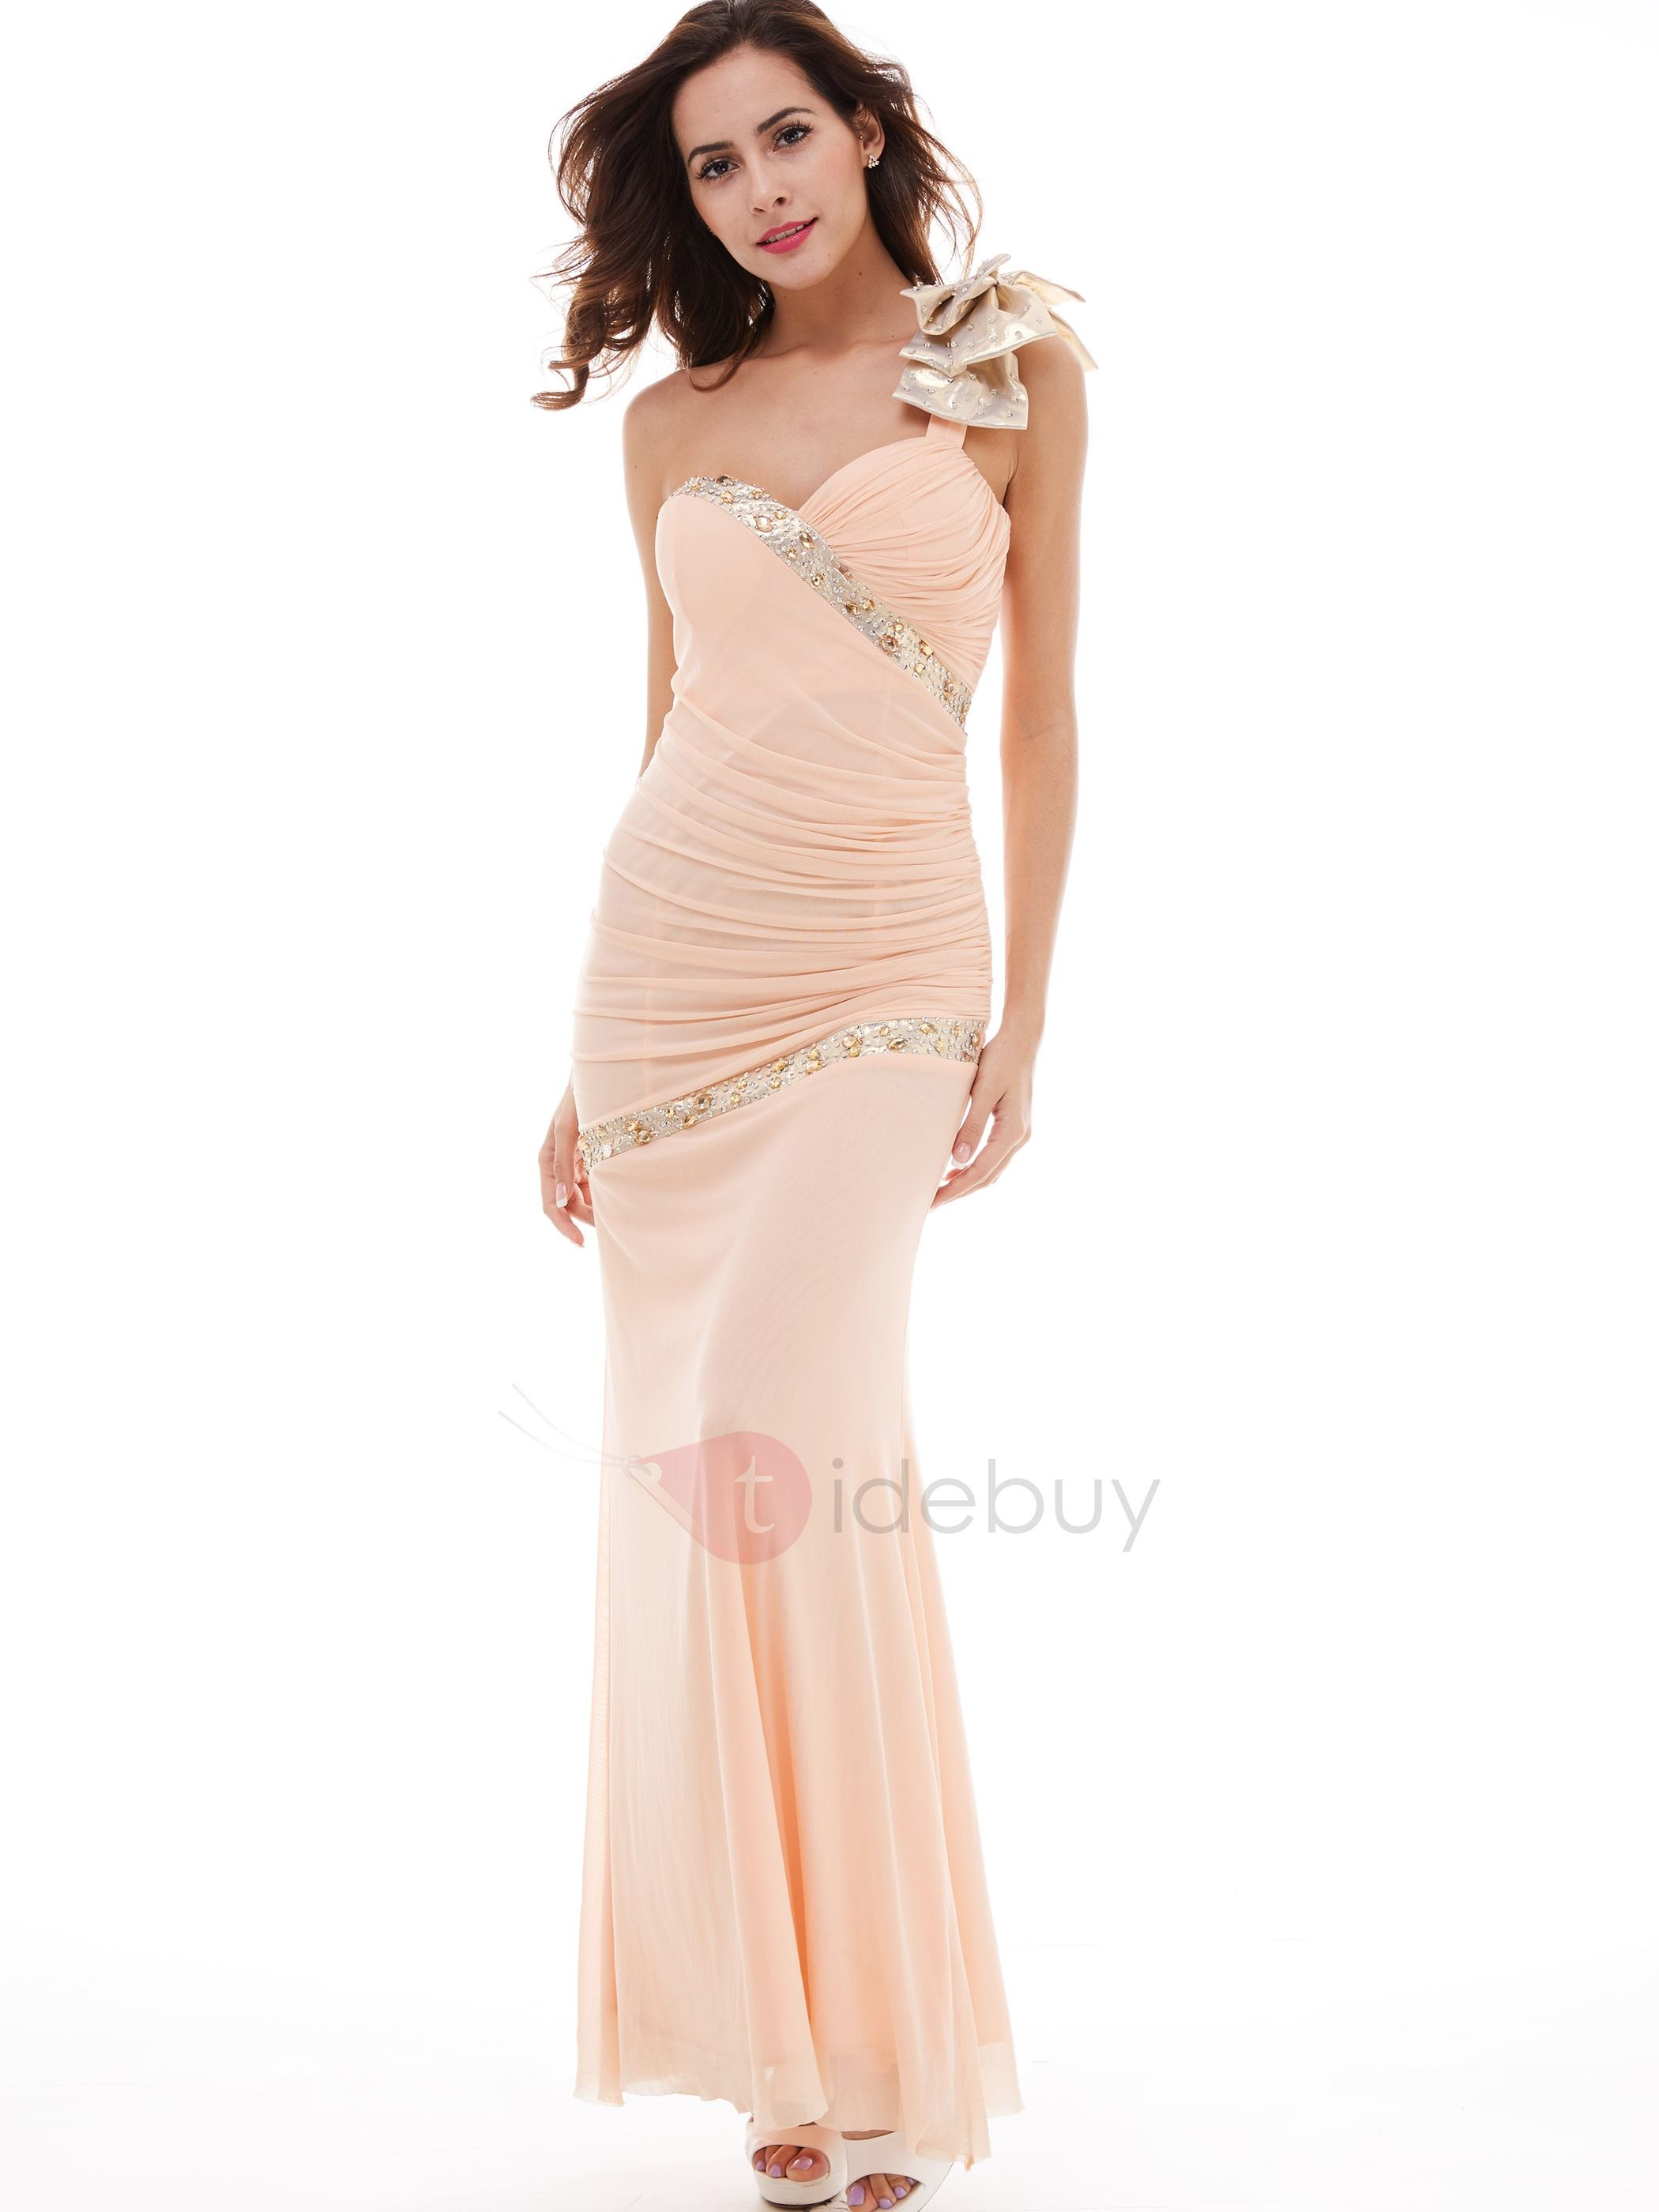 Elegant Beading Pleated Sheath/Column Evening Dress